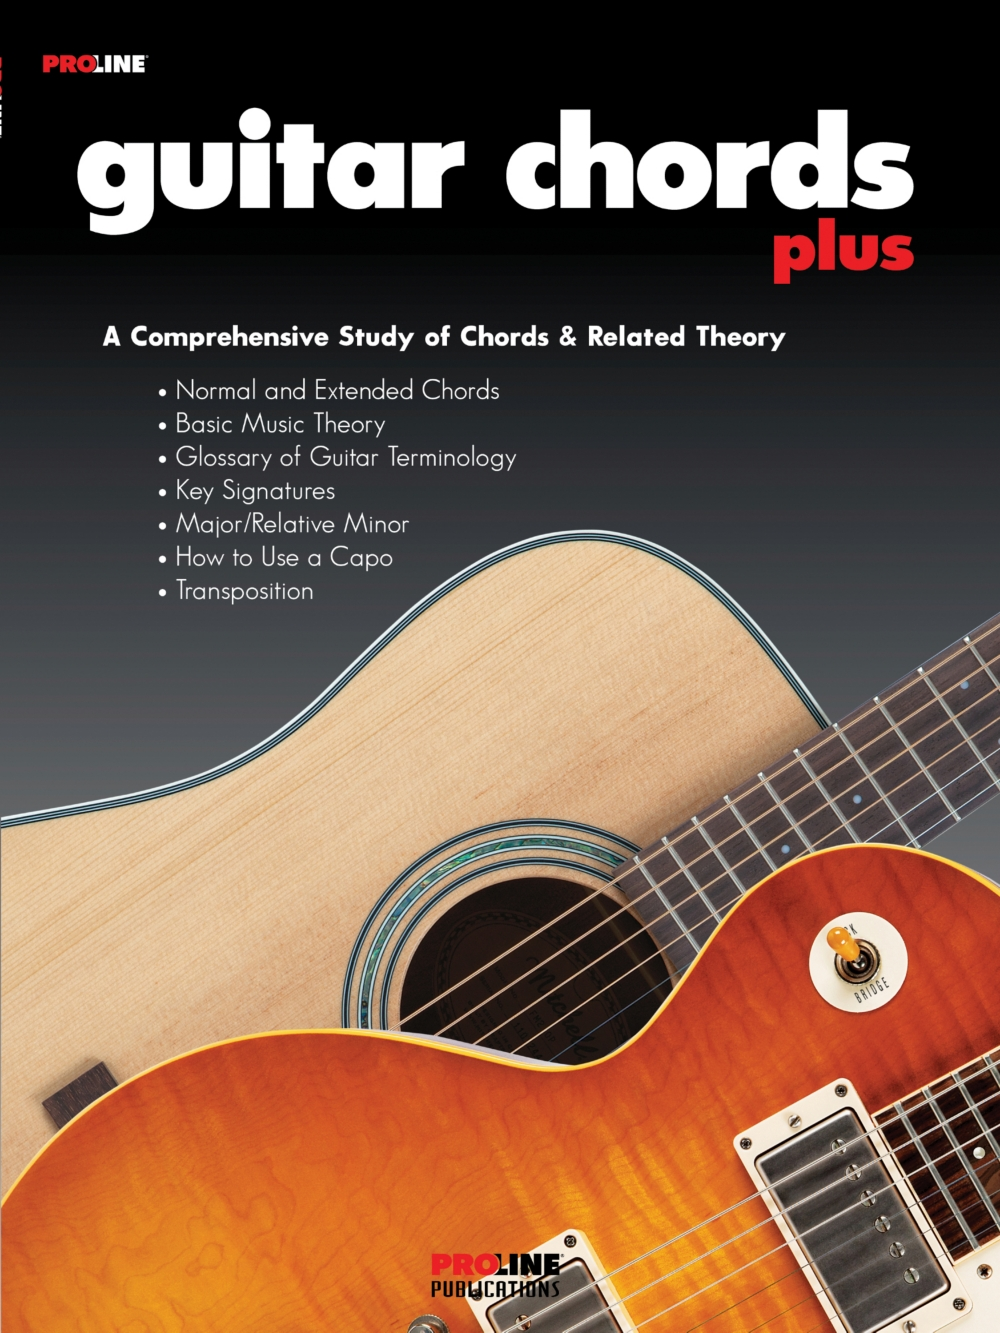 Proline Guitar Chords Plus Book Walmart